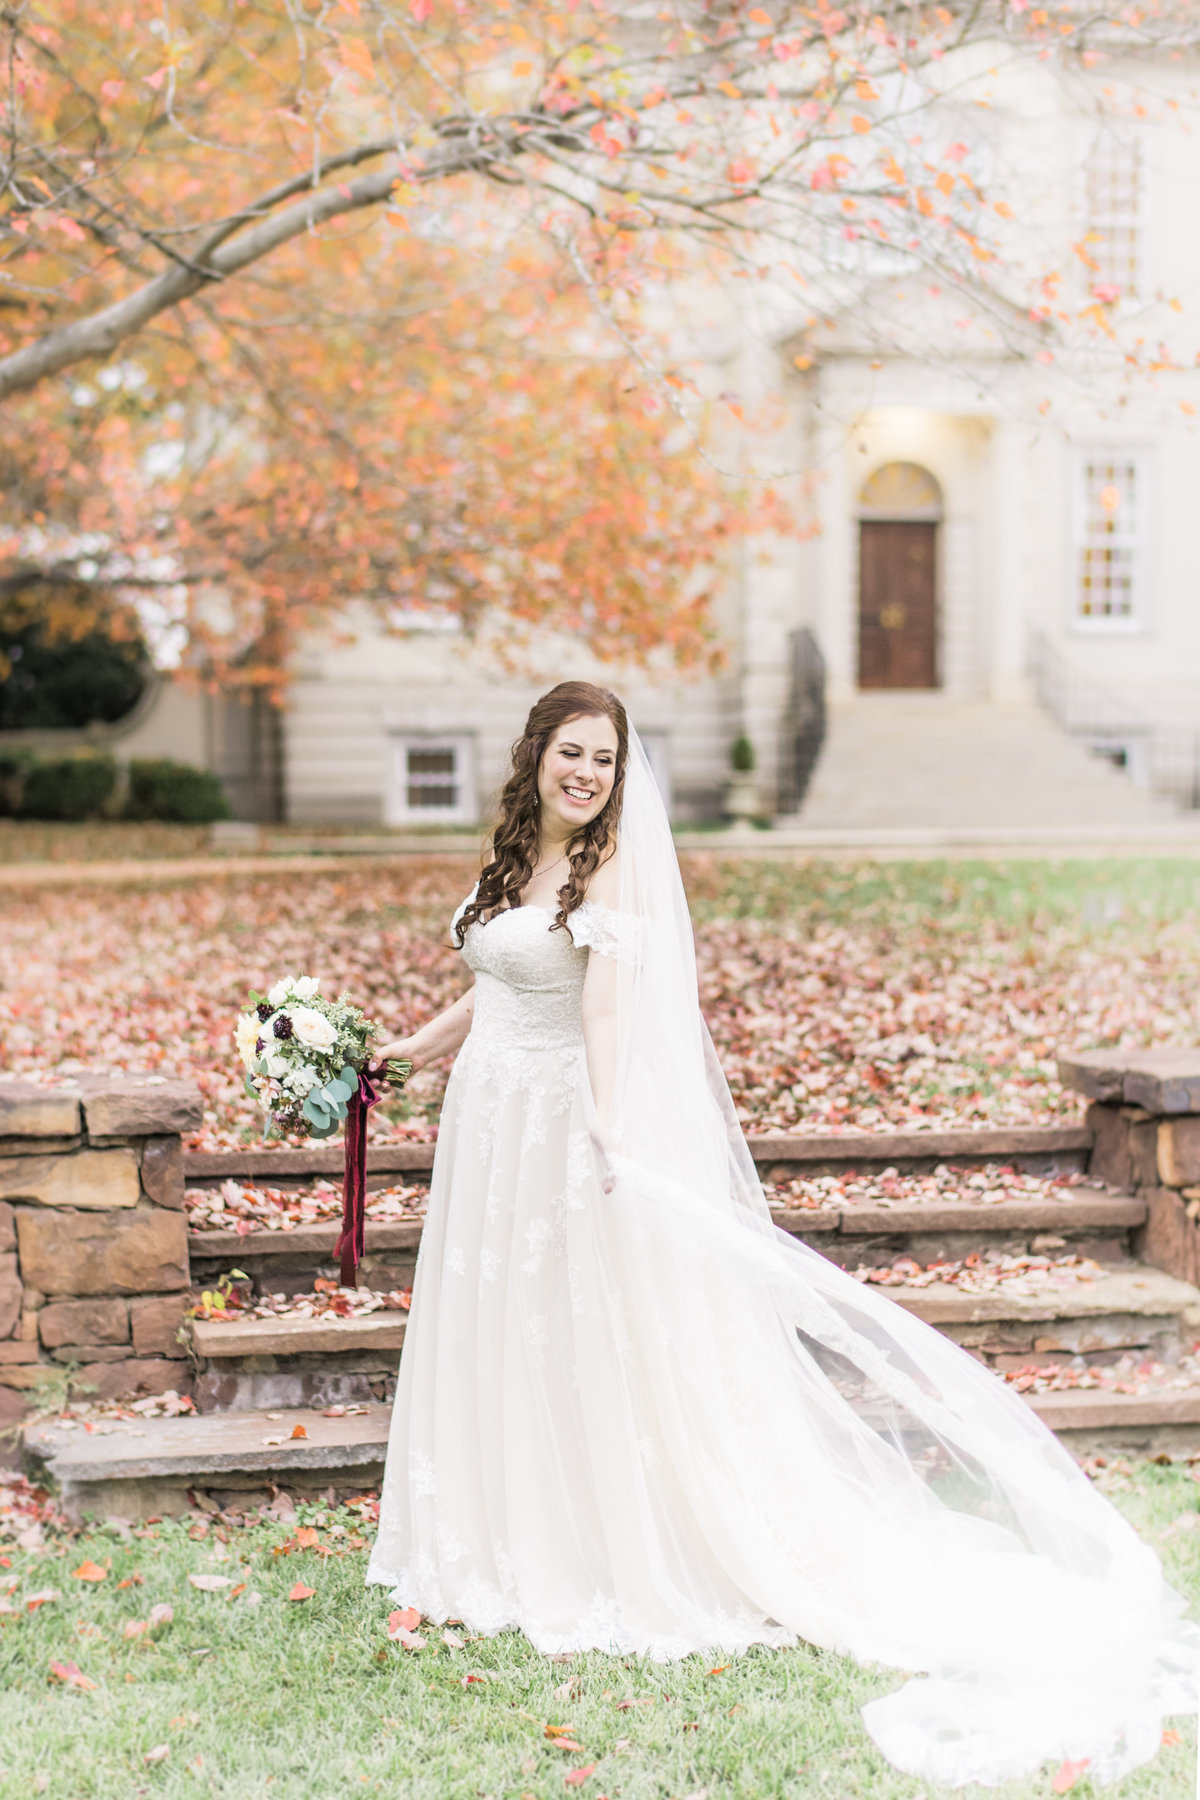 6-anthony-kathryn-great-marsh-estate-bealeton-virginia-wedding-photographer-25